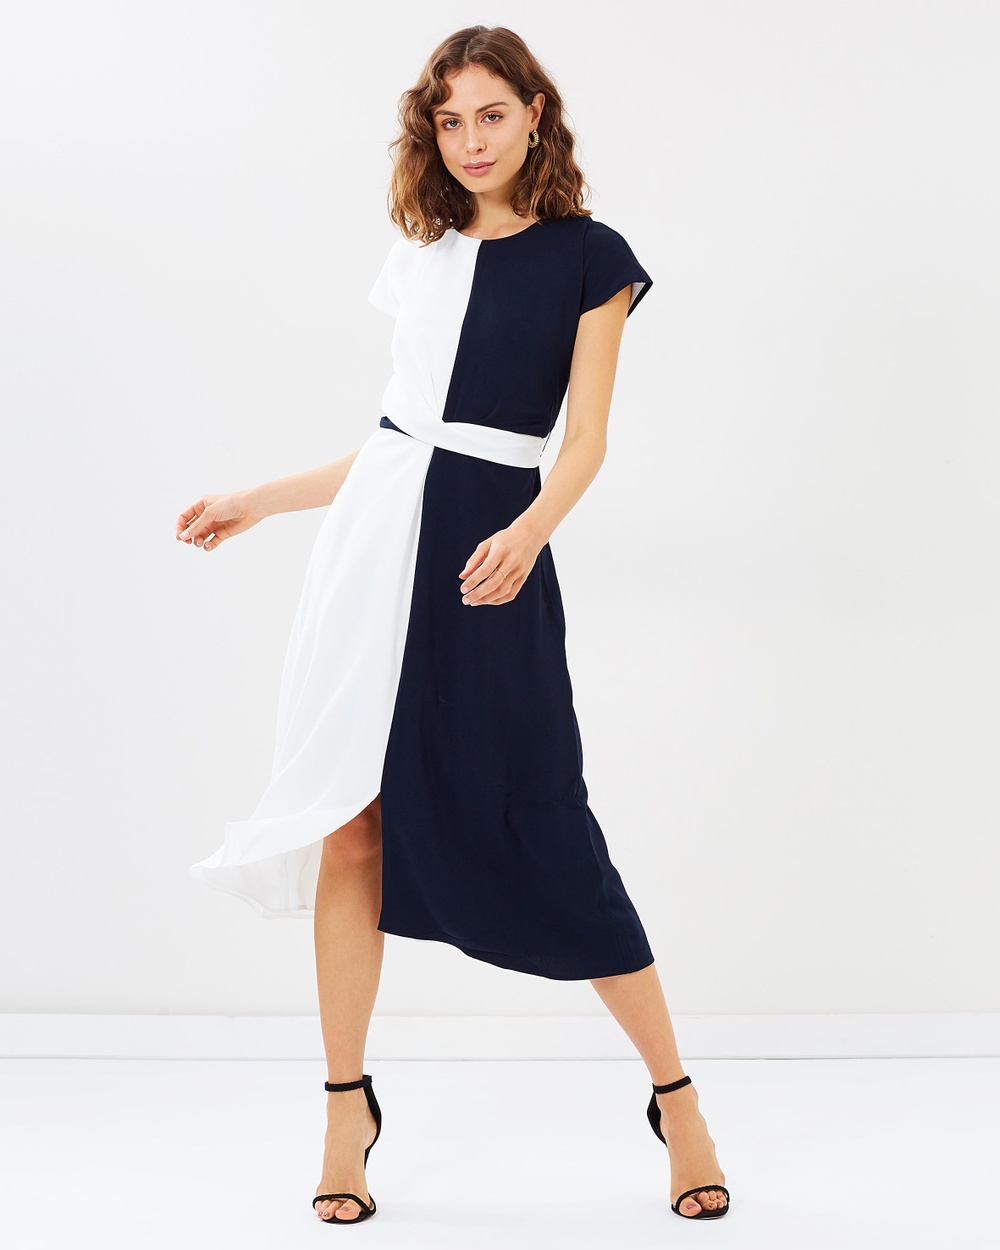 Warehouse Colour Block Twist Front Dress Dresses Navy & White Colour-Block Twist Front Dress